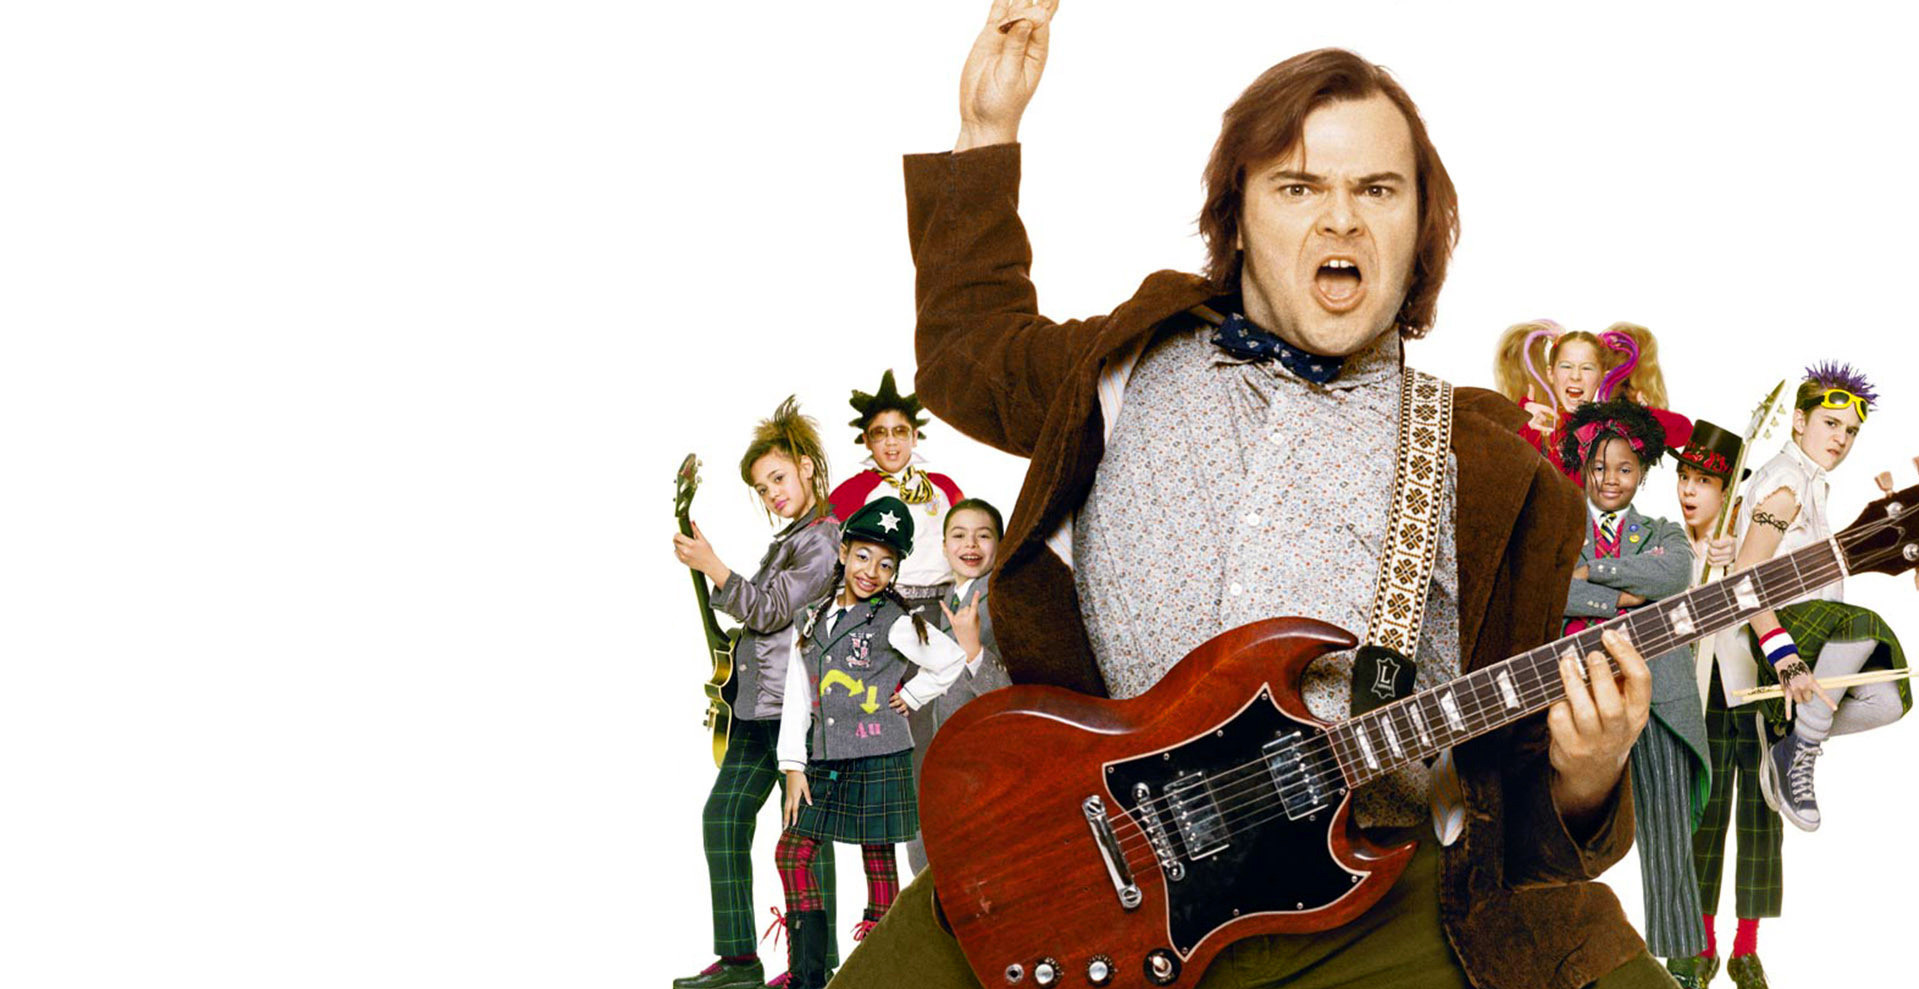 THE BOTTOMLESS SINGING CINEMA PRESENT: SCHOOL OF ROCK - MANCHESTER